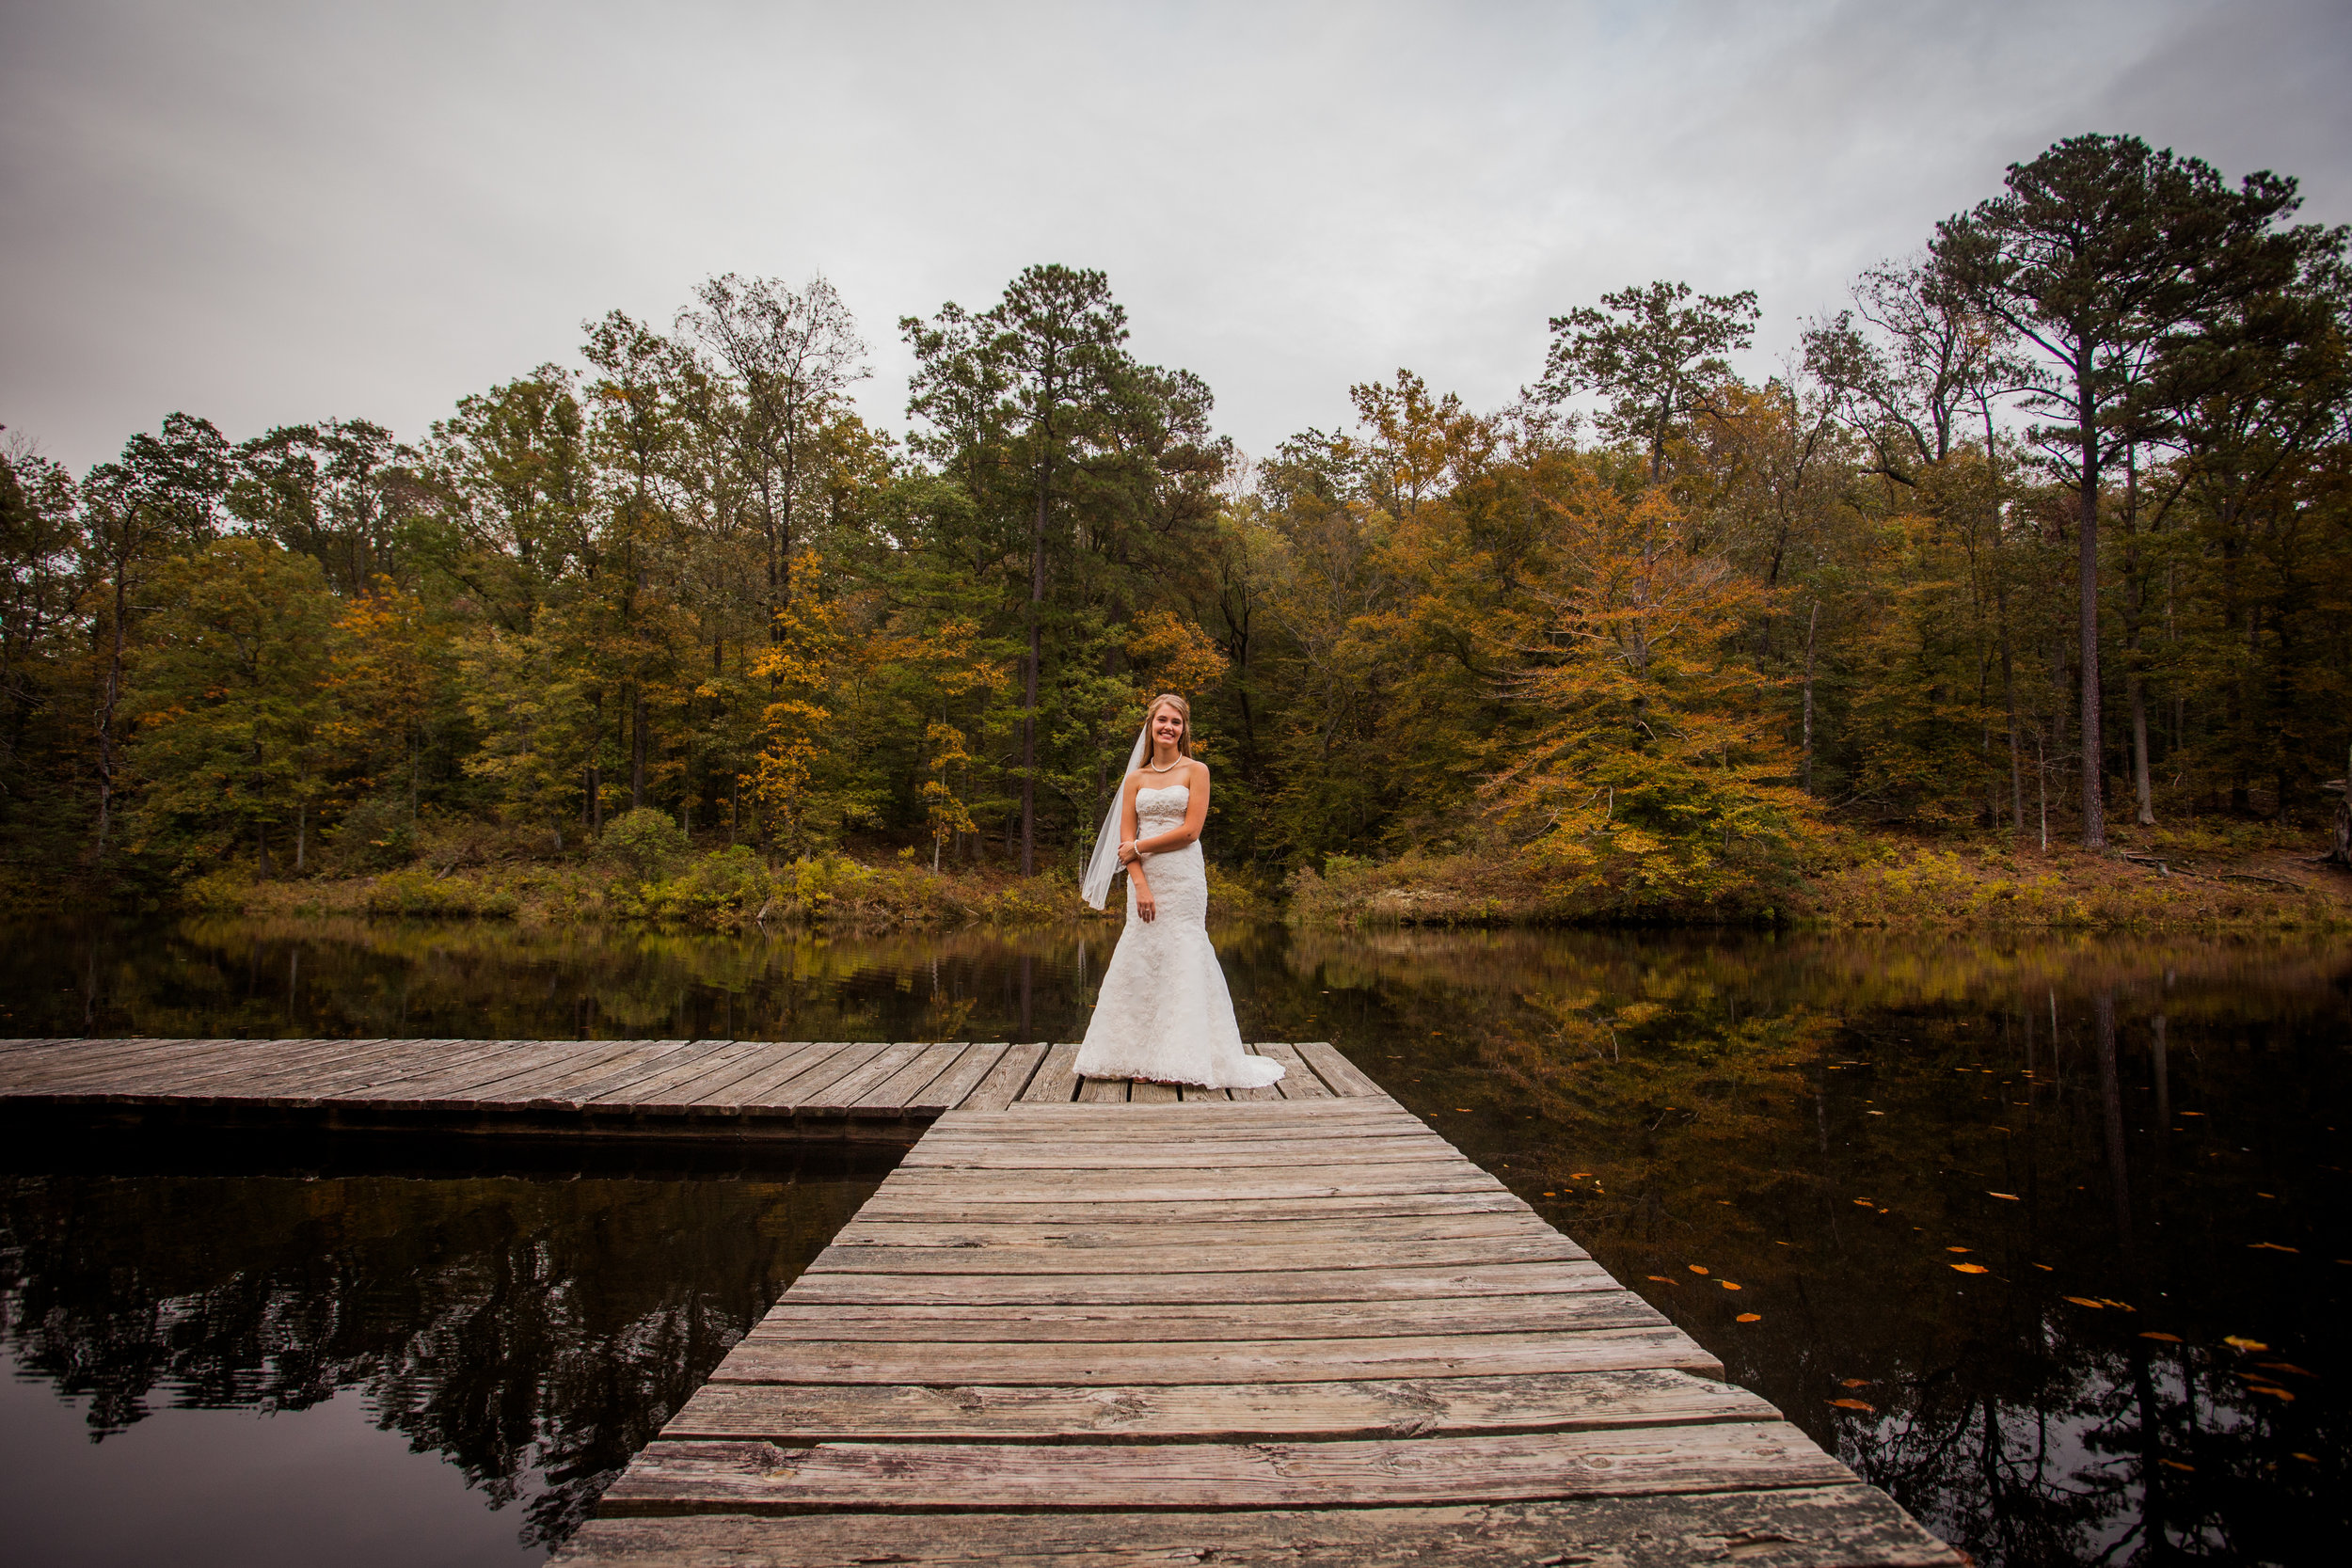 Bride-Dock-Richmond-Virginia.jpg